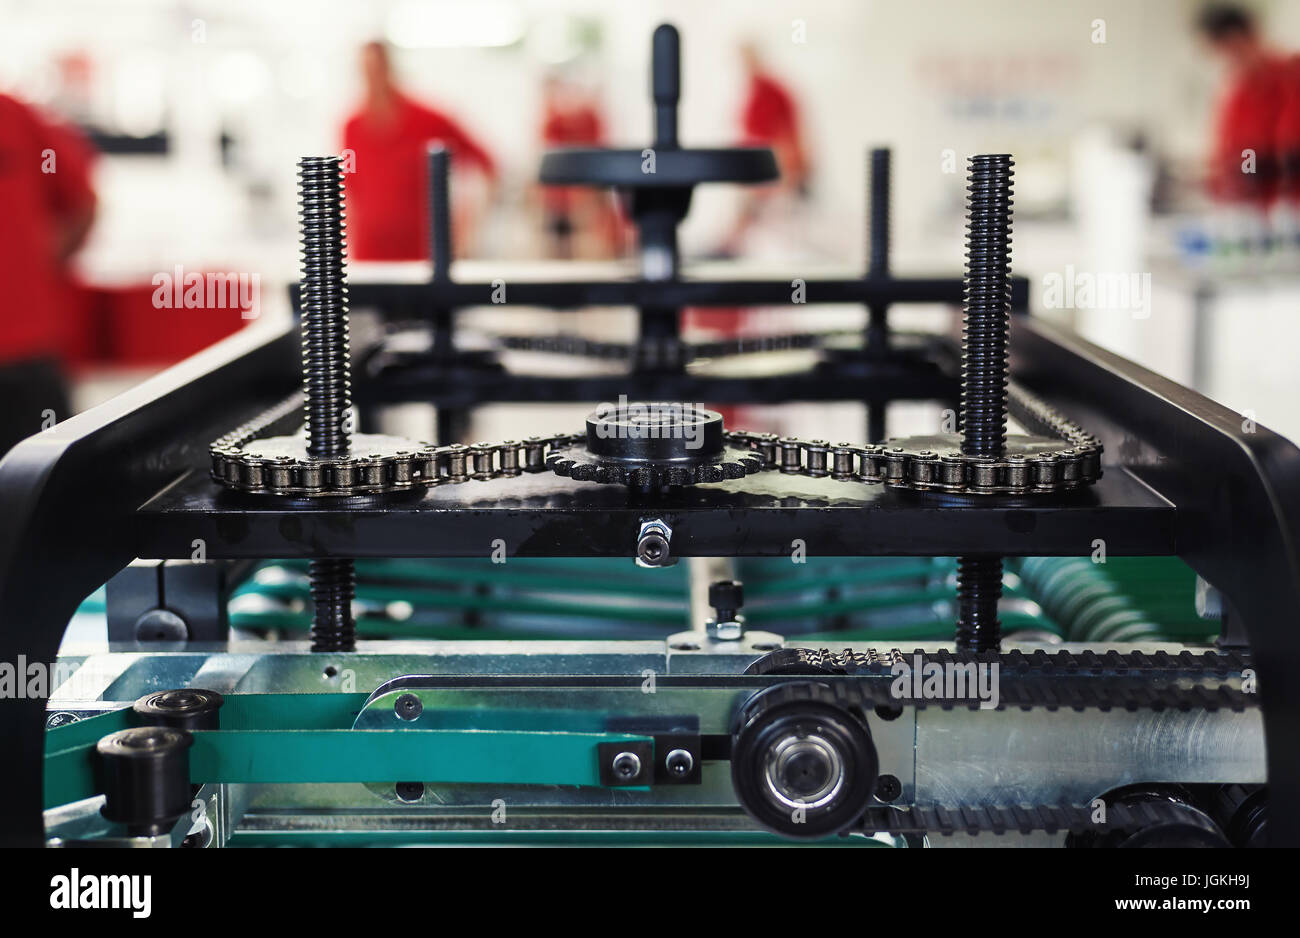 Abstract composition of manufacturing industrial machines for packaging. - Stock Image